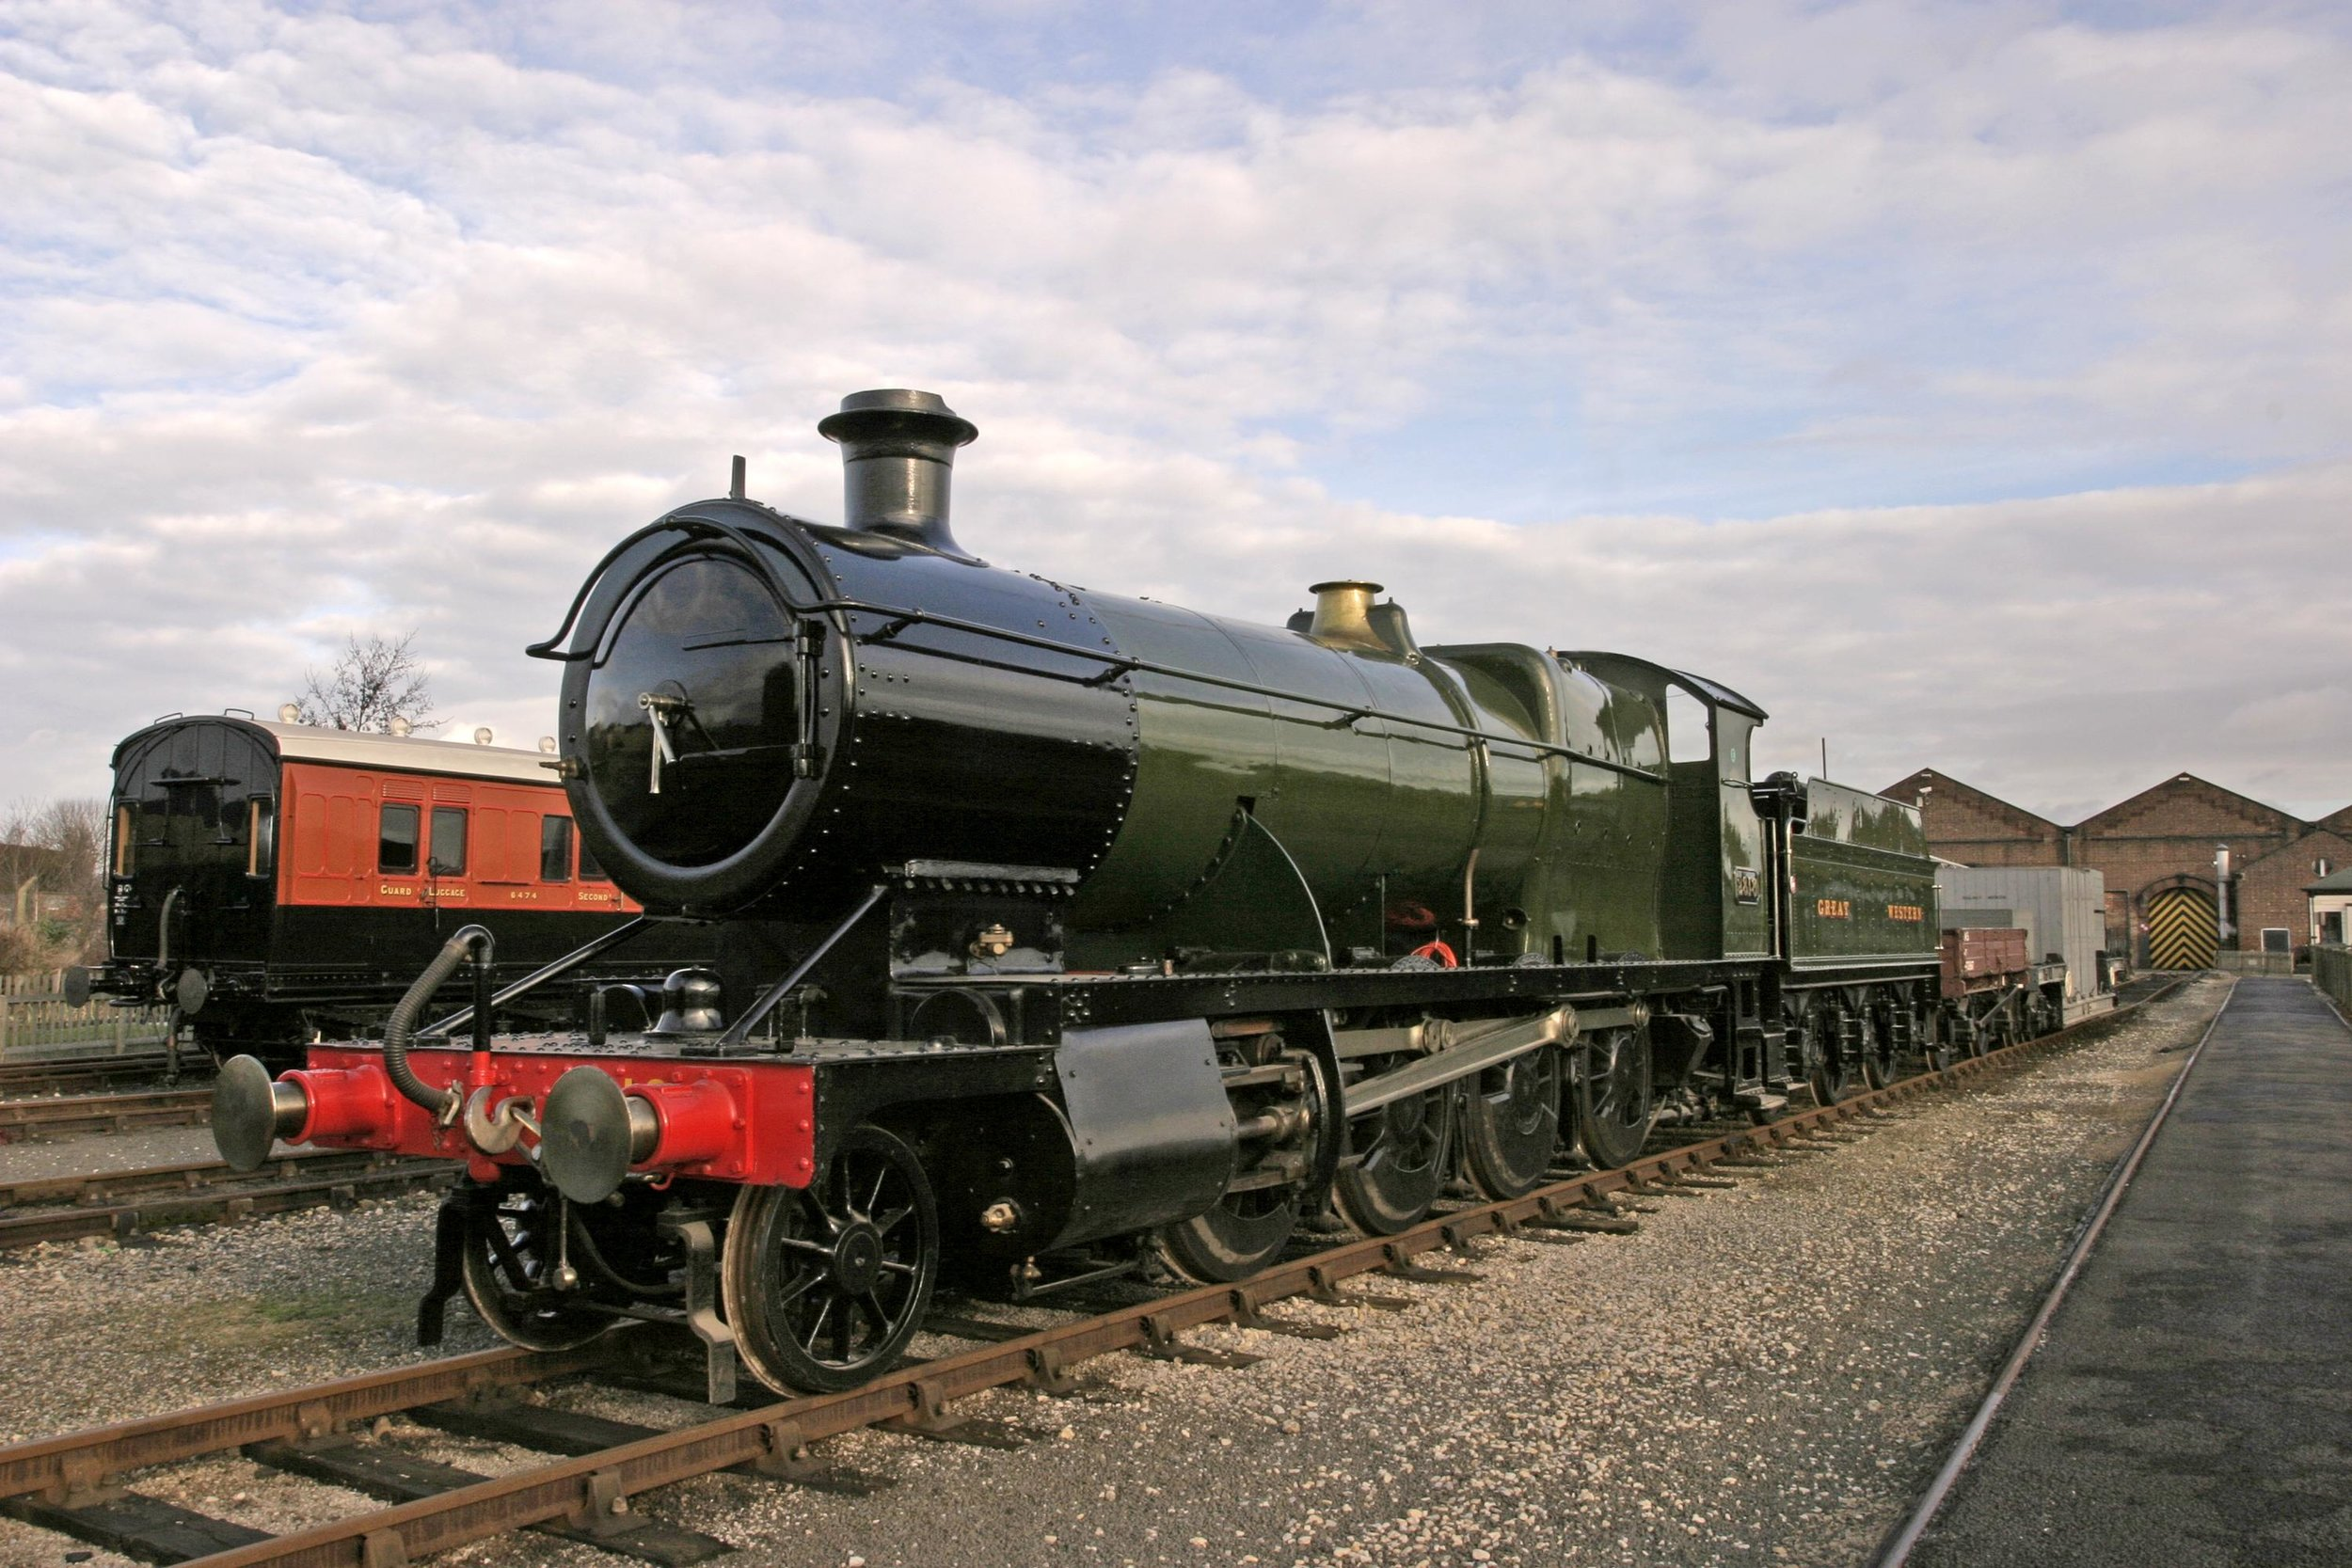 GWR '28XX' No. 2818 is no longer part of the National Collection, as it has been transferred to STEAM - Museum of the Great Western Railway in Swindon. NRM